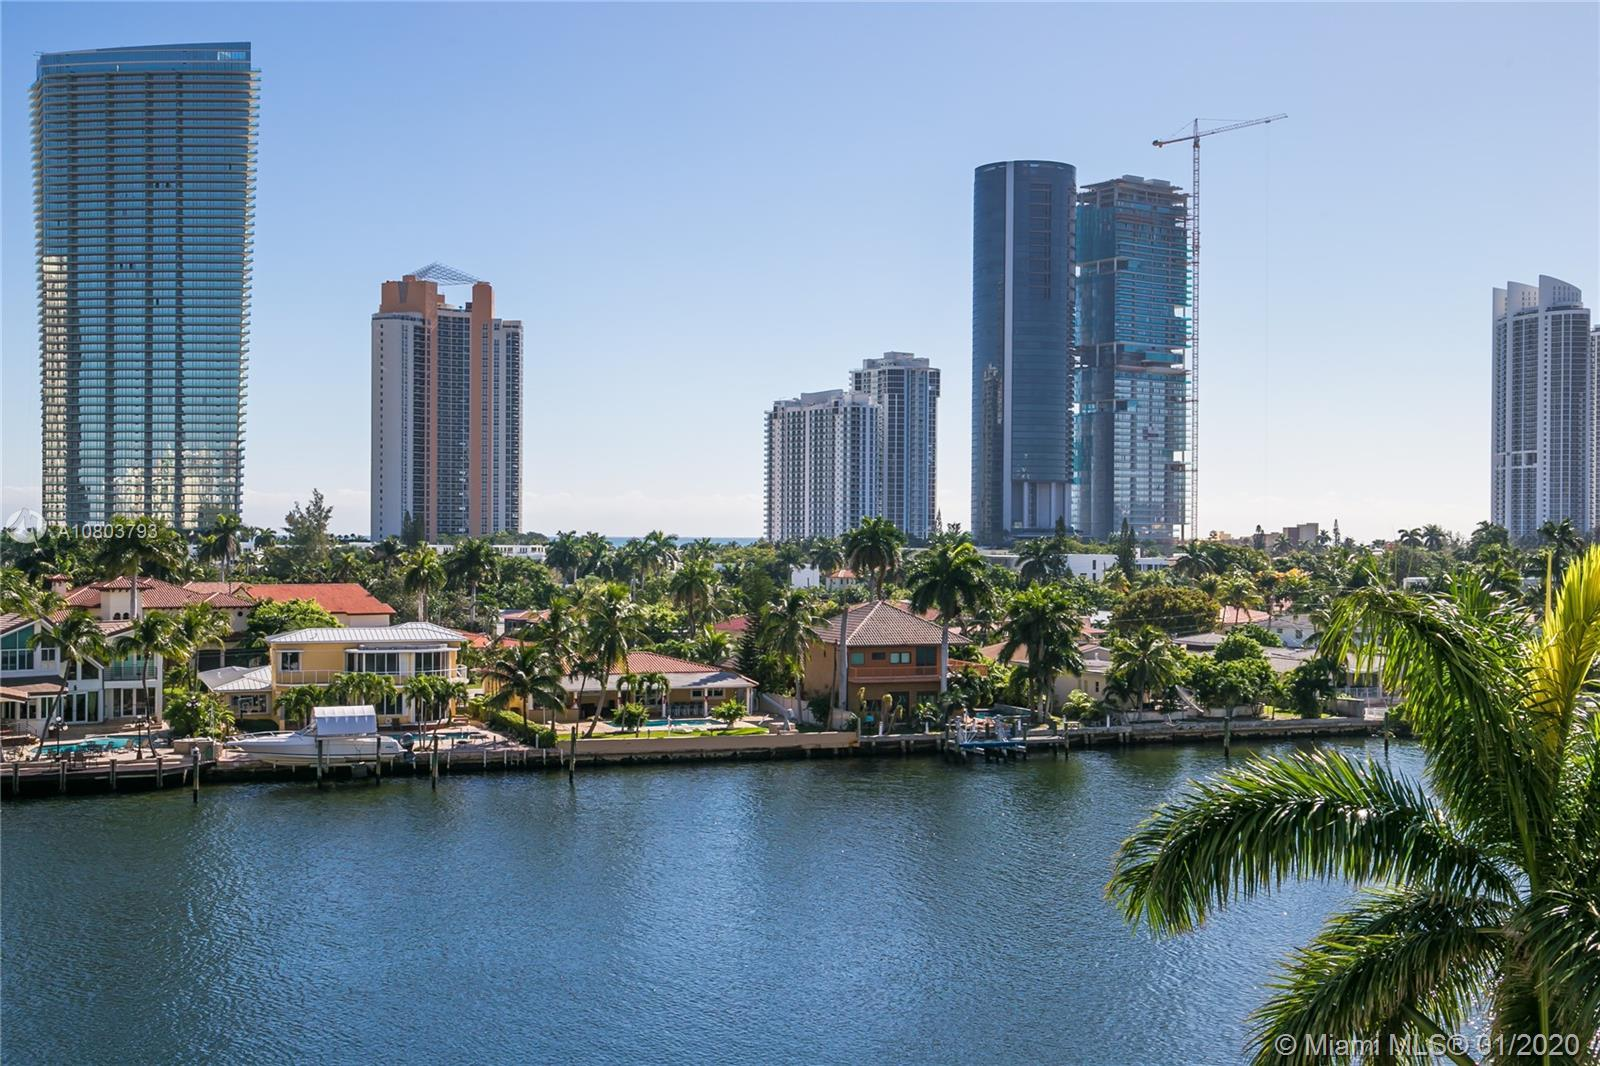 Breathtaking intracoastal and water views from this spacious condo located at the prestigious Mystic